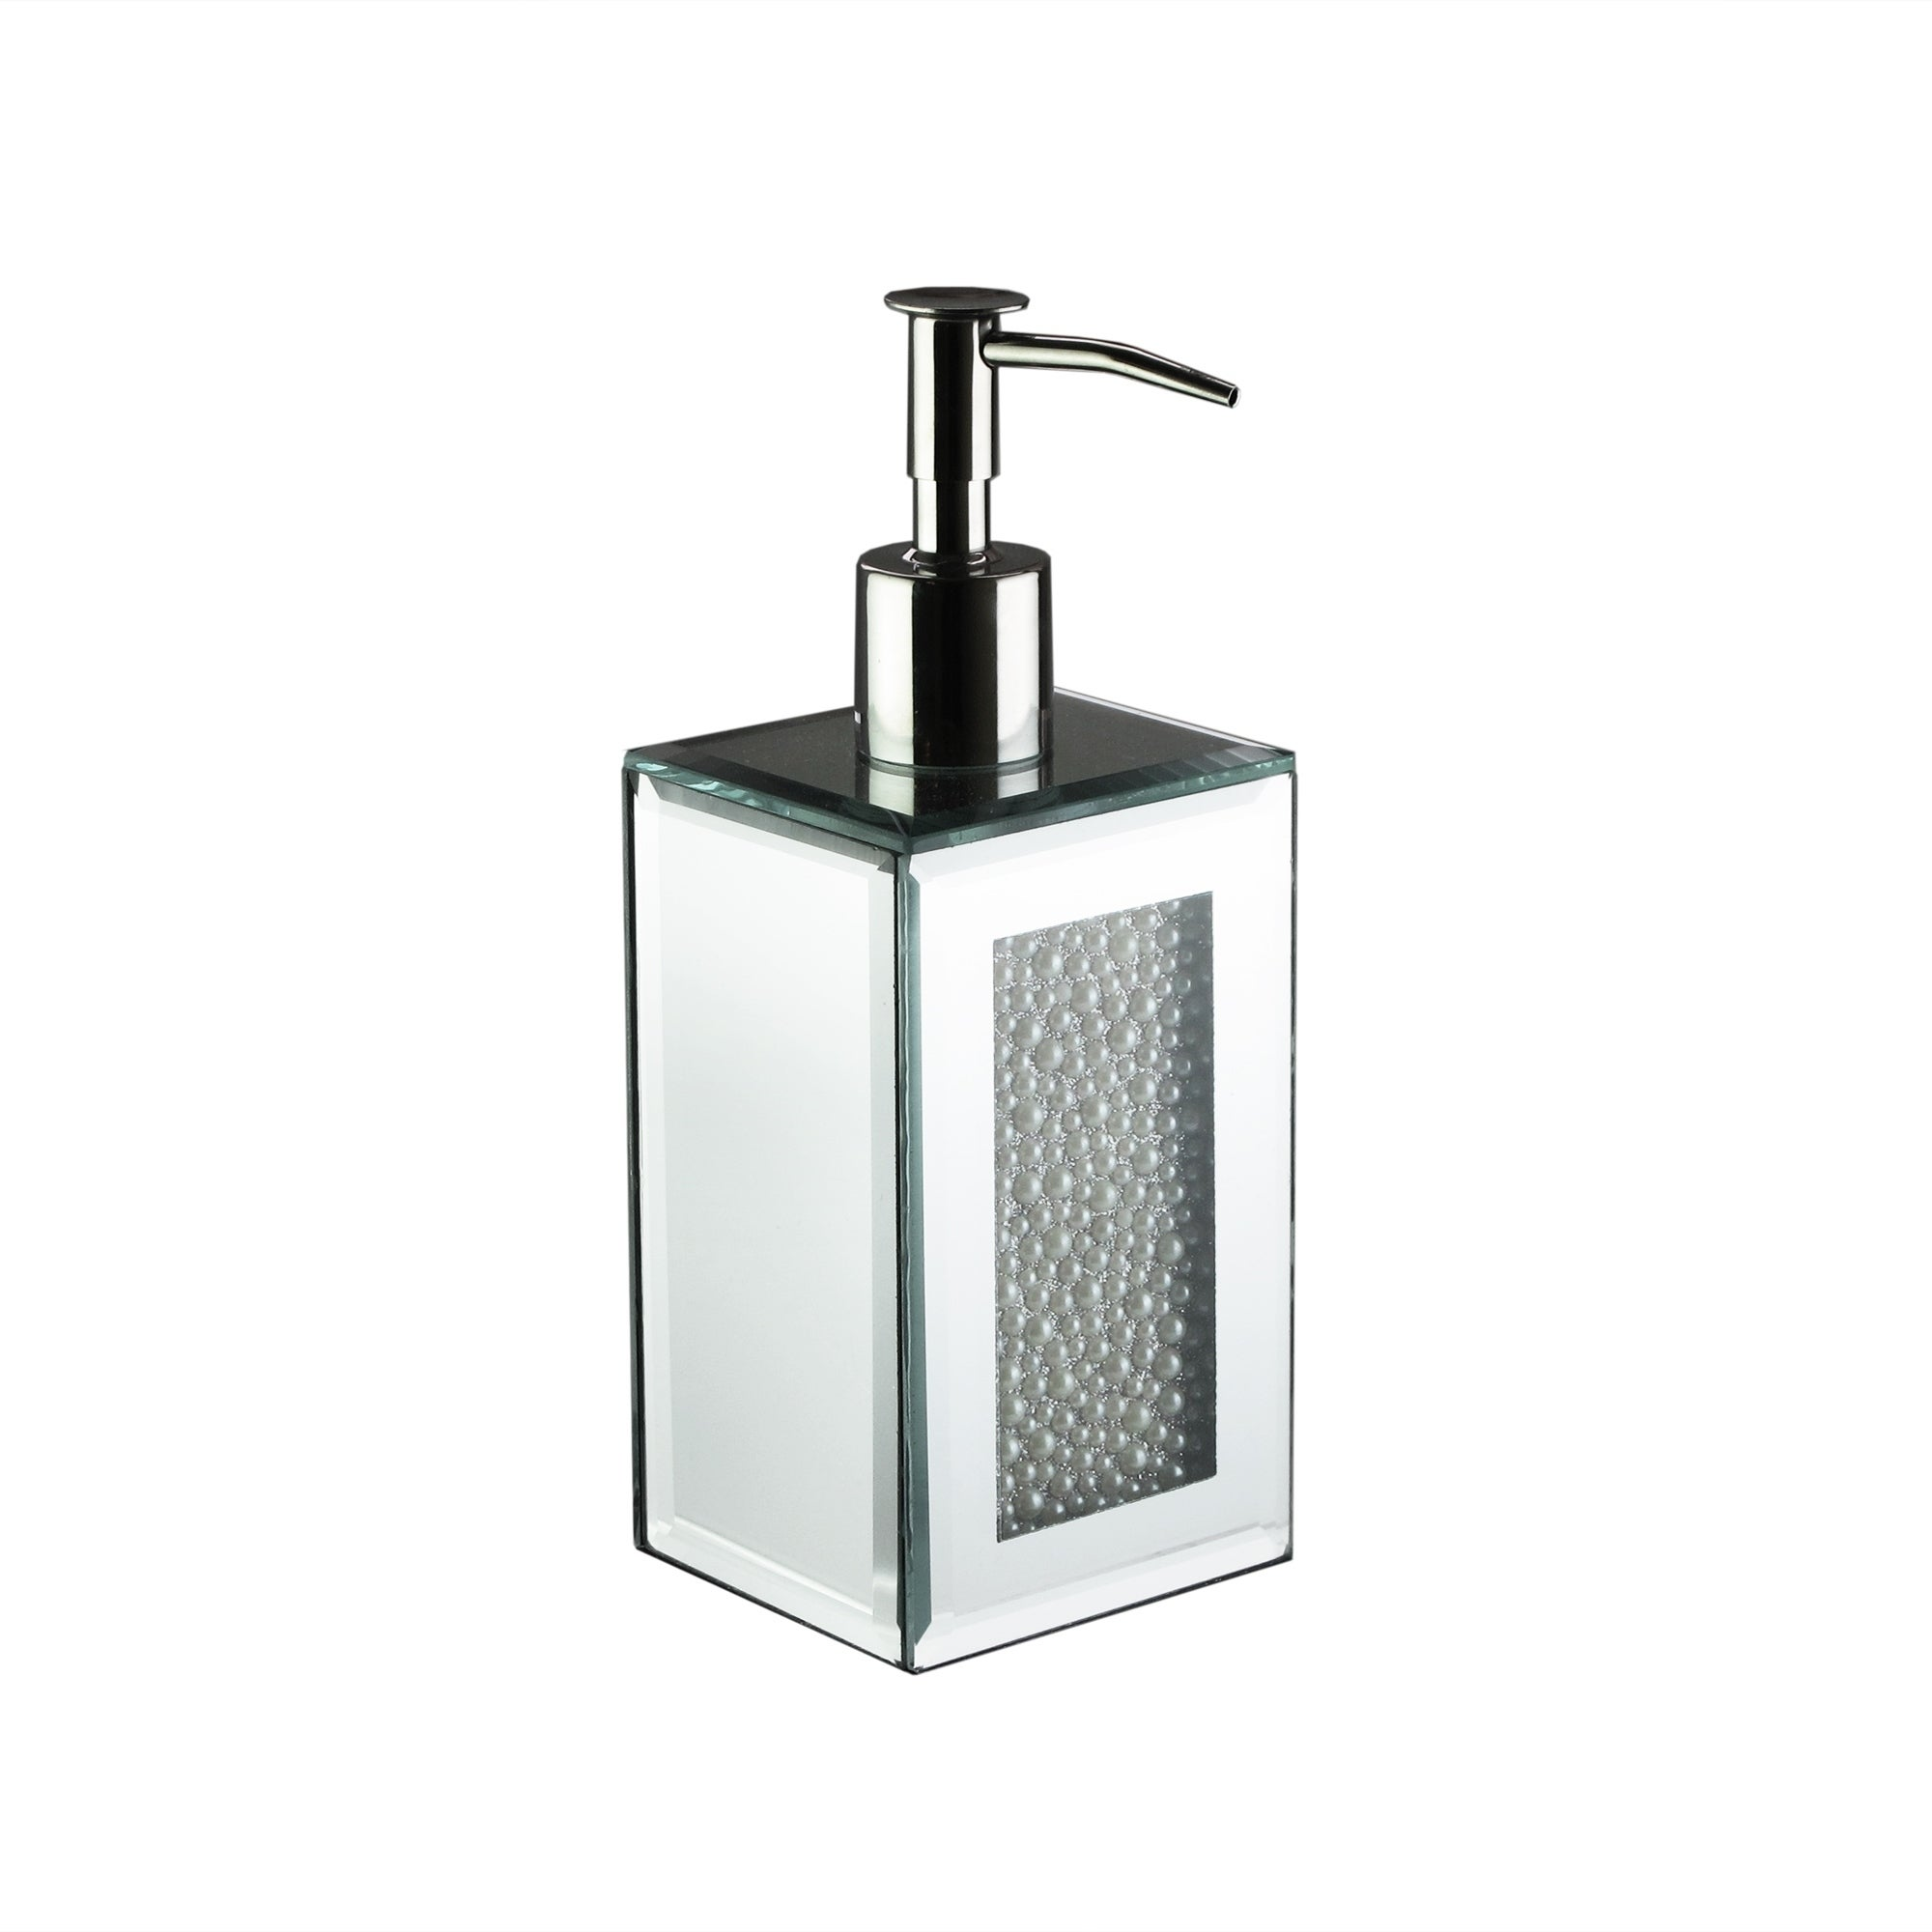 Pearl Mirror Lotion Dispenser Overstock 21506132